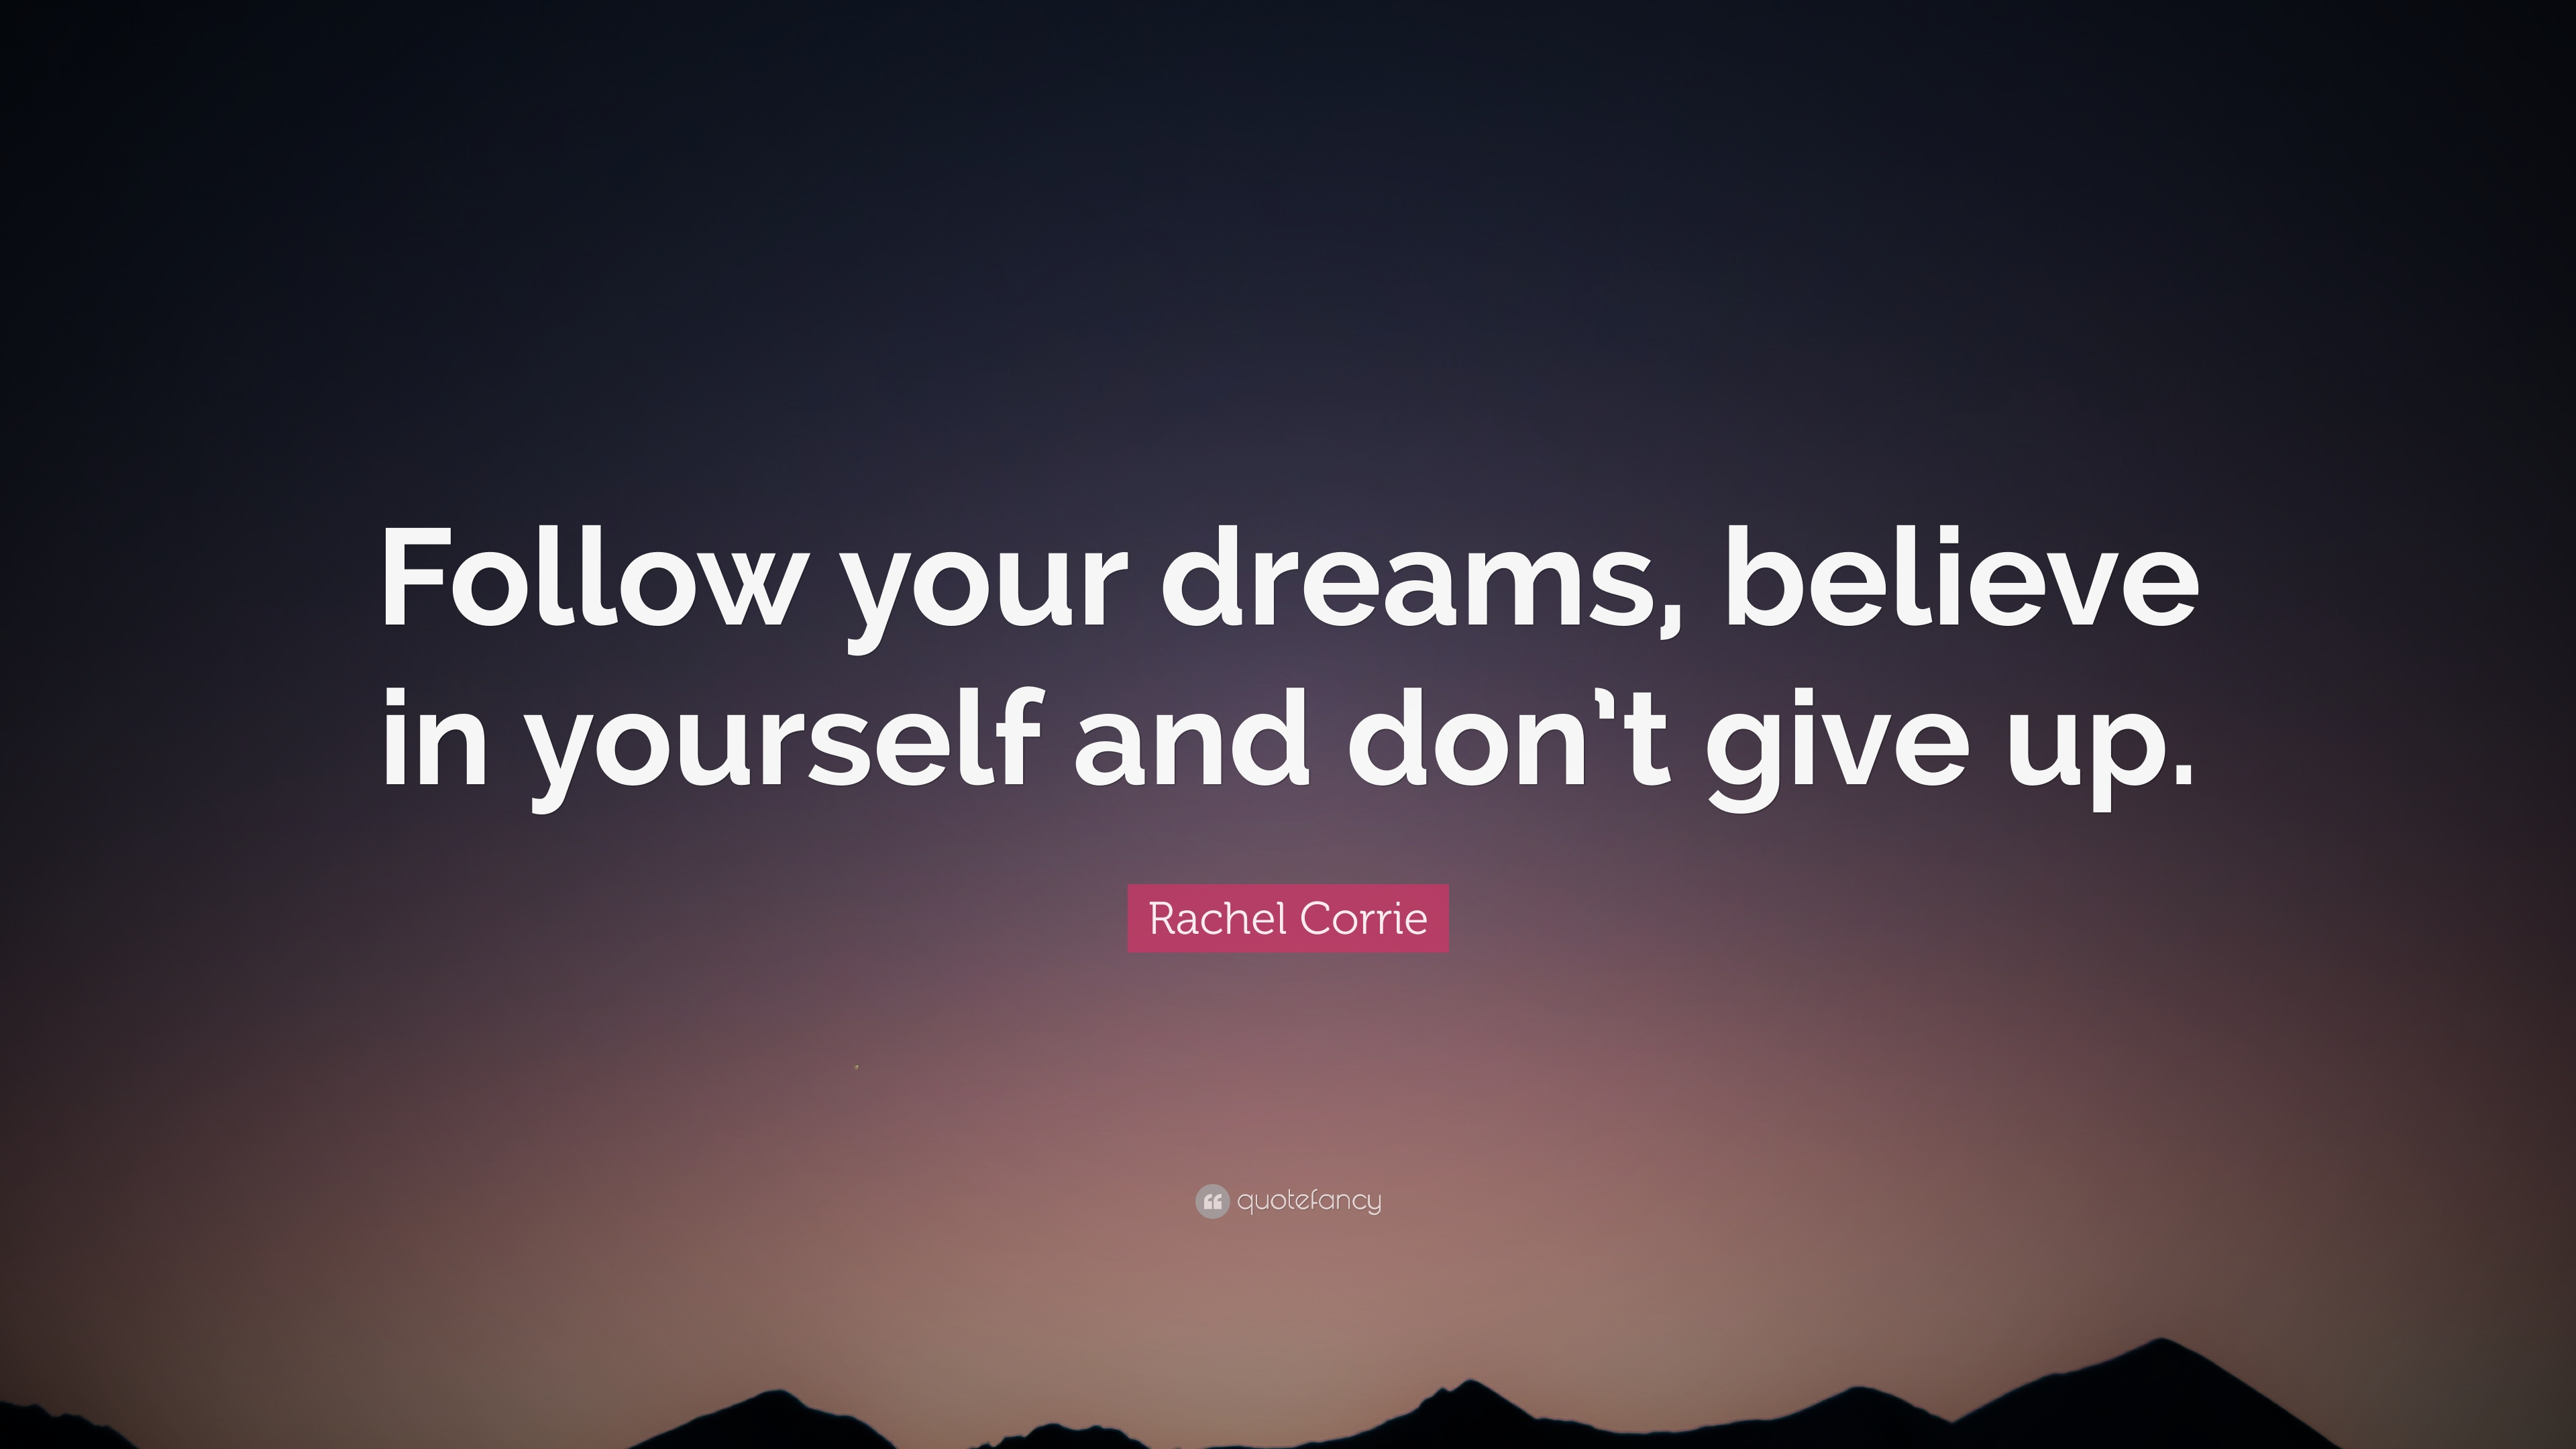 Rachel corrie quote follow your dreams believe in yourself and don t give up 12 wallpapers - Follow wallpaper ...